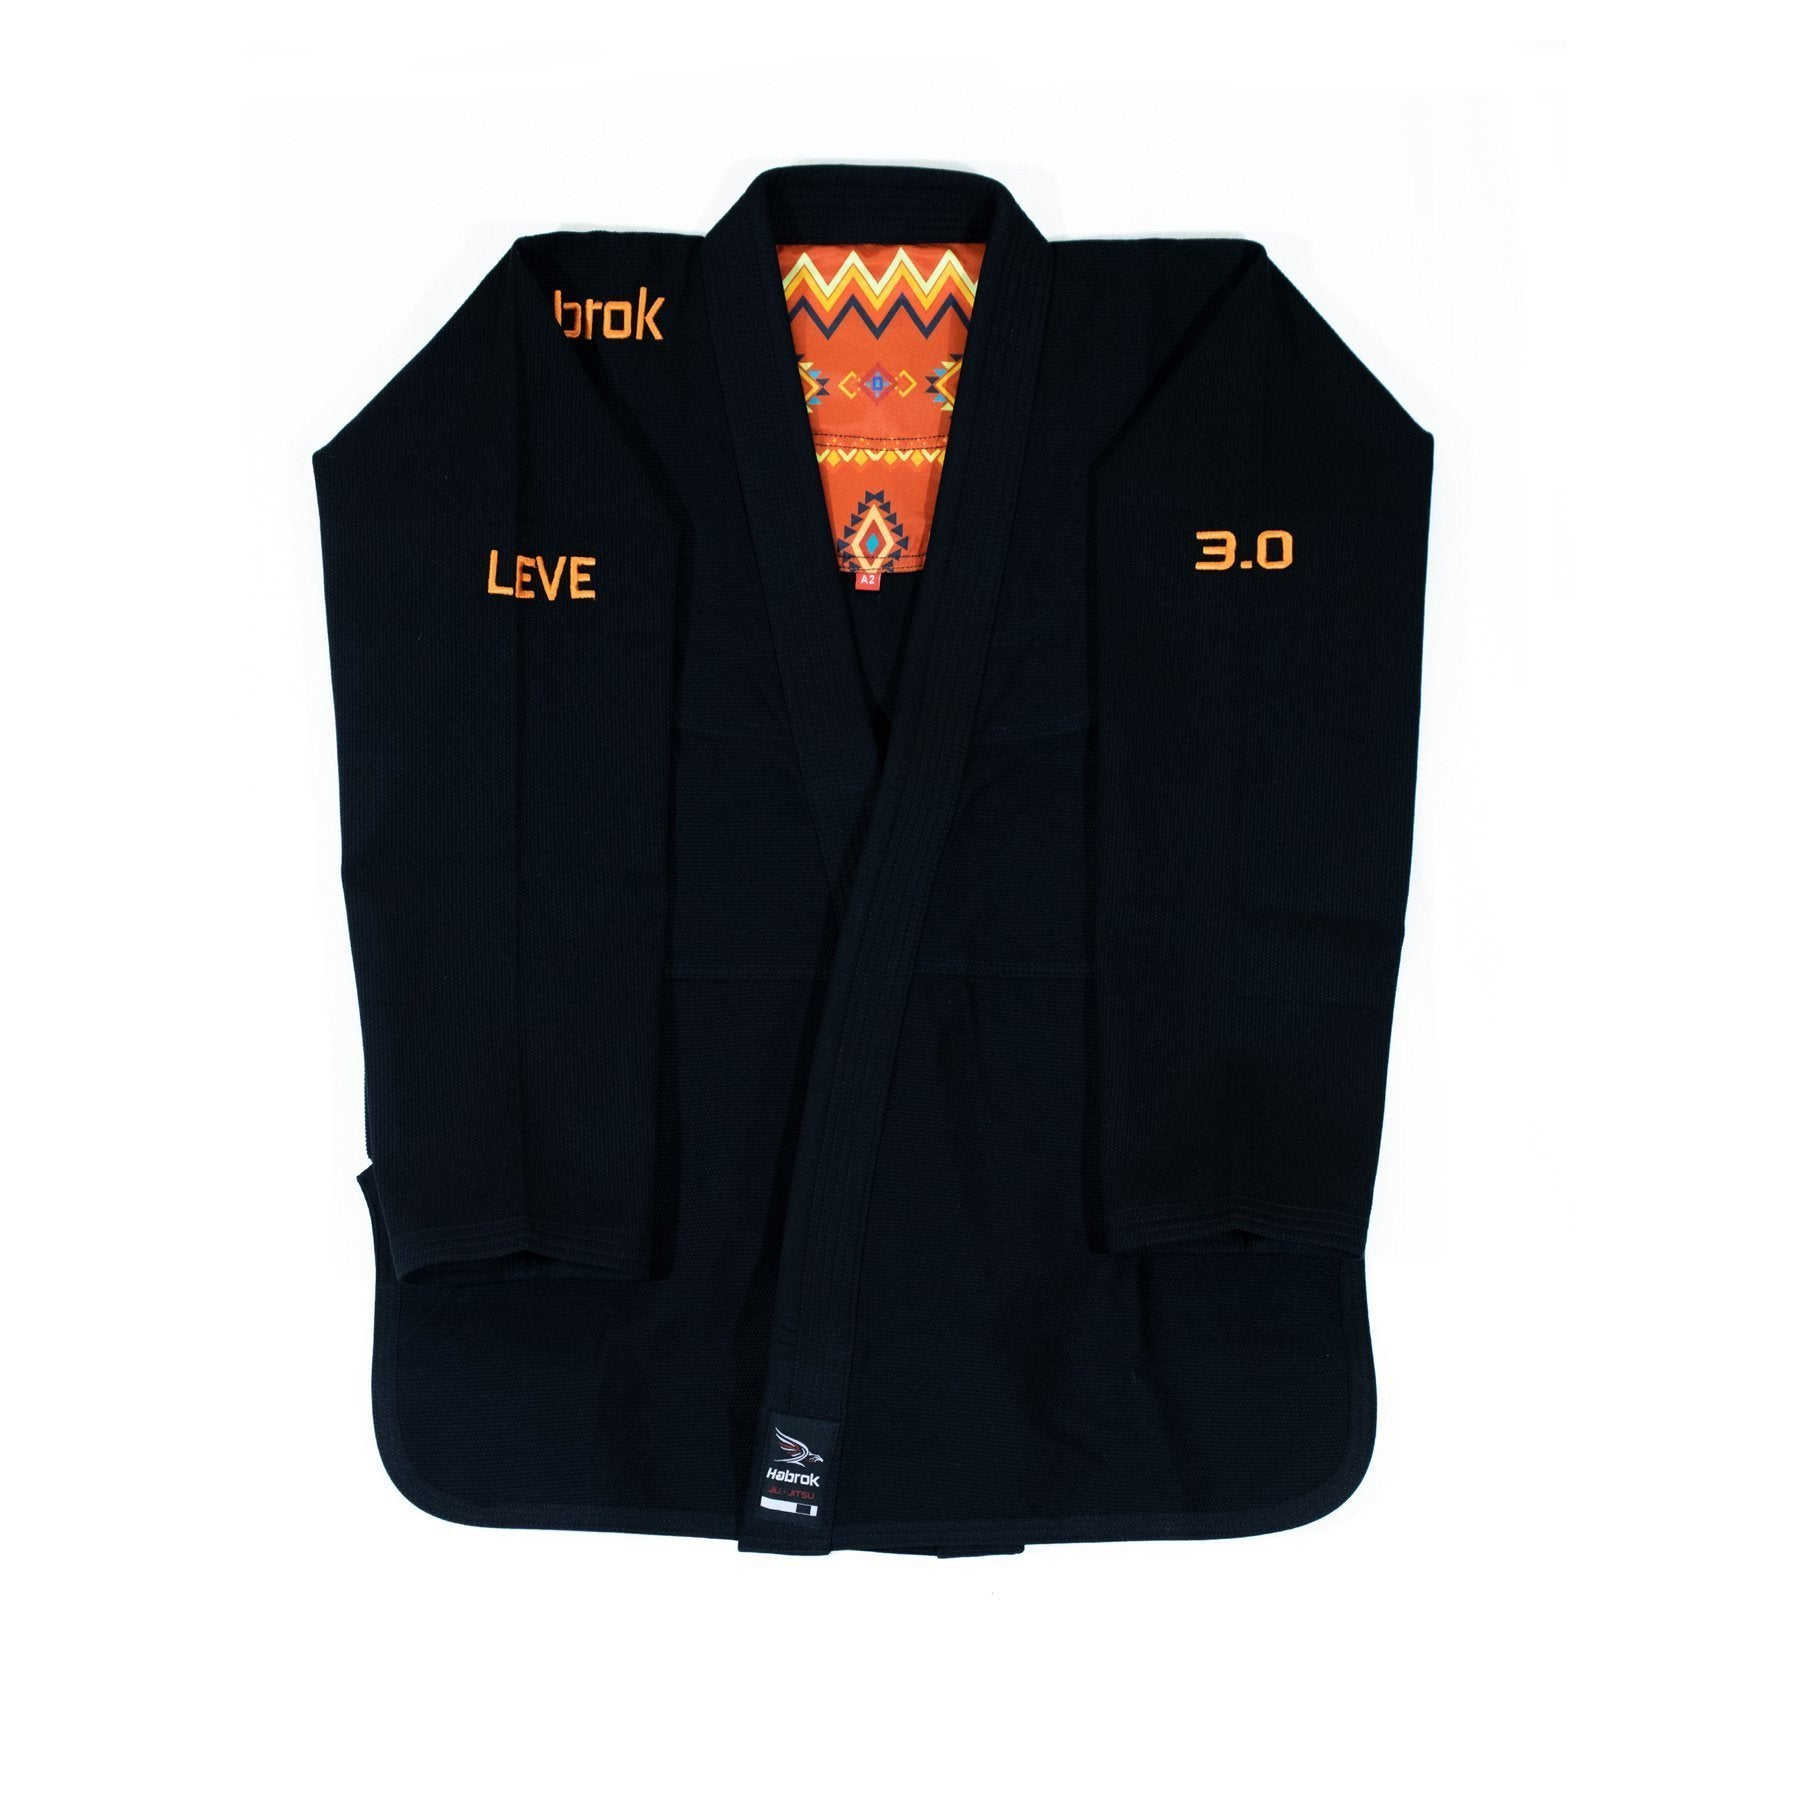 Leve 3.0 | Premium Ultra Light | BJJ GI | Youth | Black